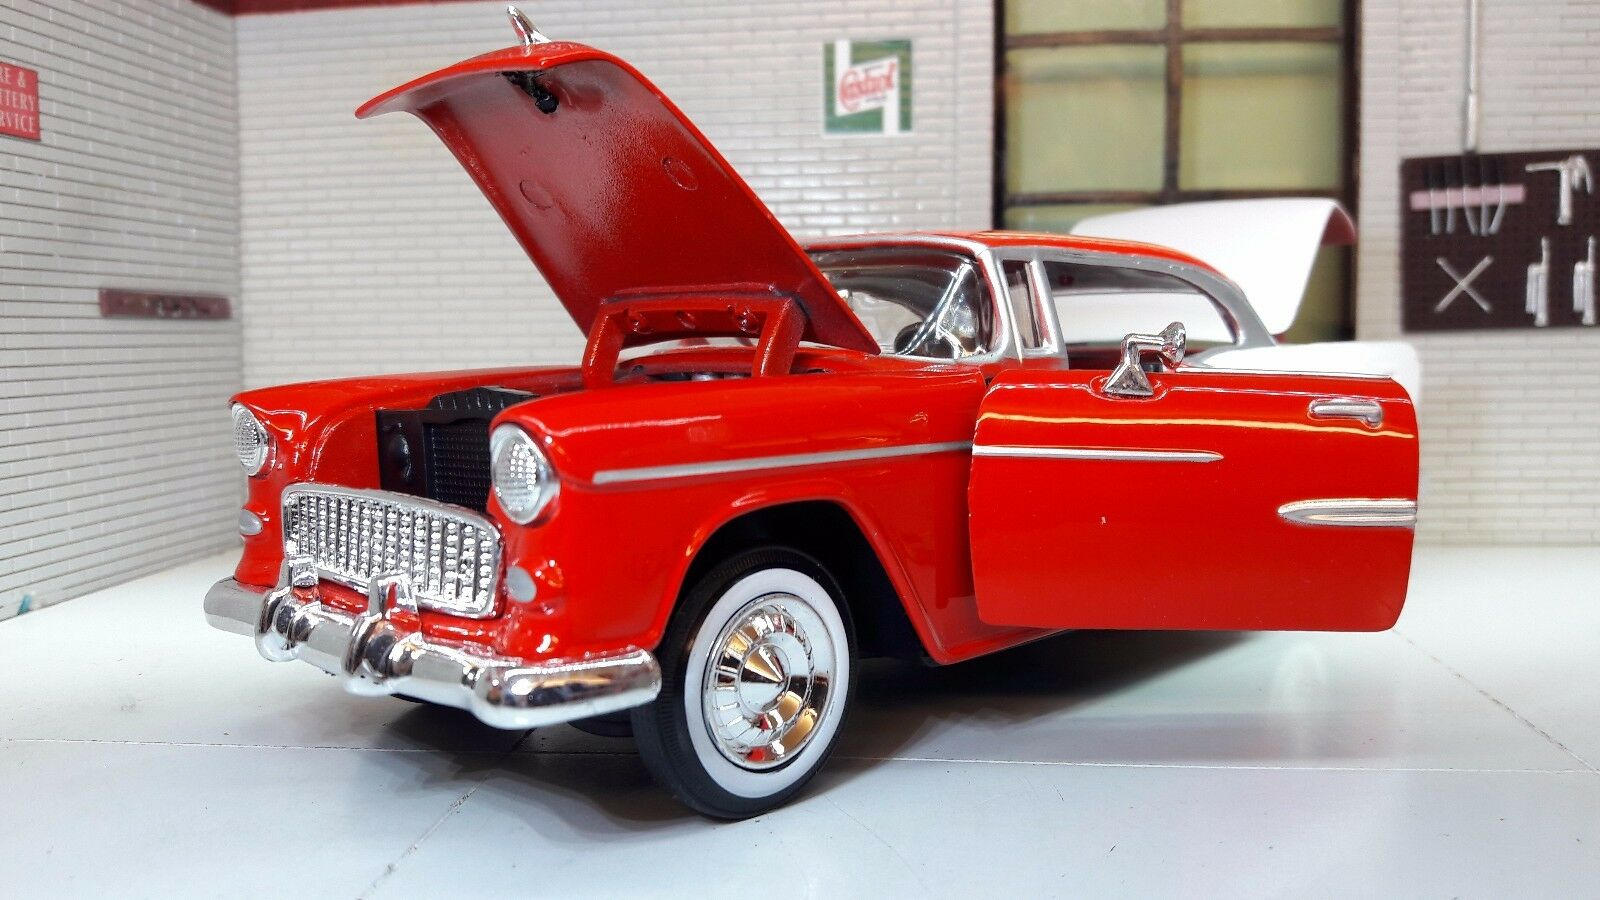 G G G LGB 1 24 Scale 1955 Chevrolet Chevy Bel Air Hard Top Motormax Car 73229 Red fd97e0